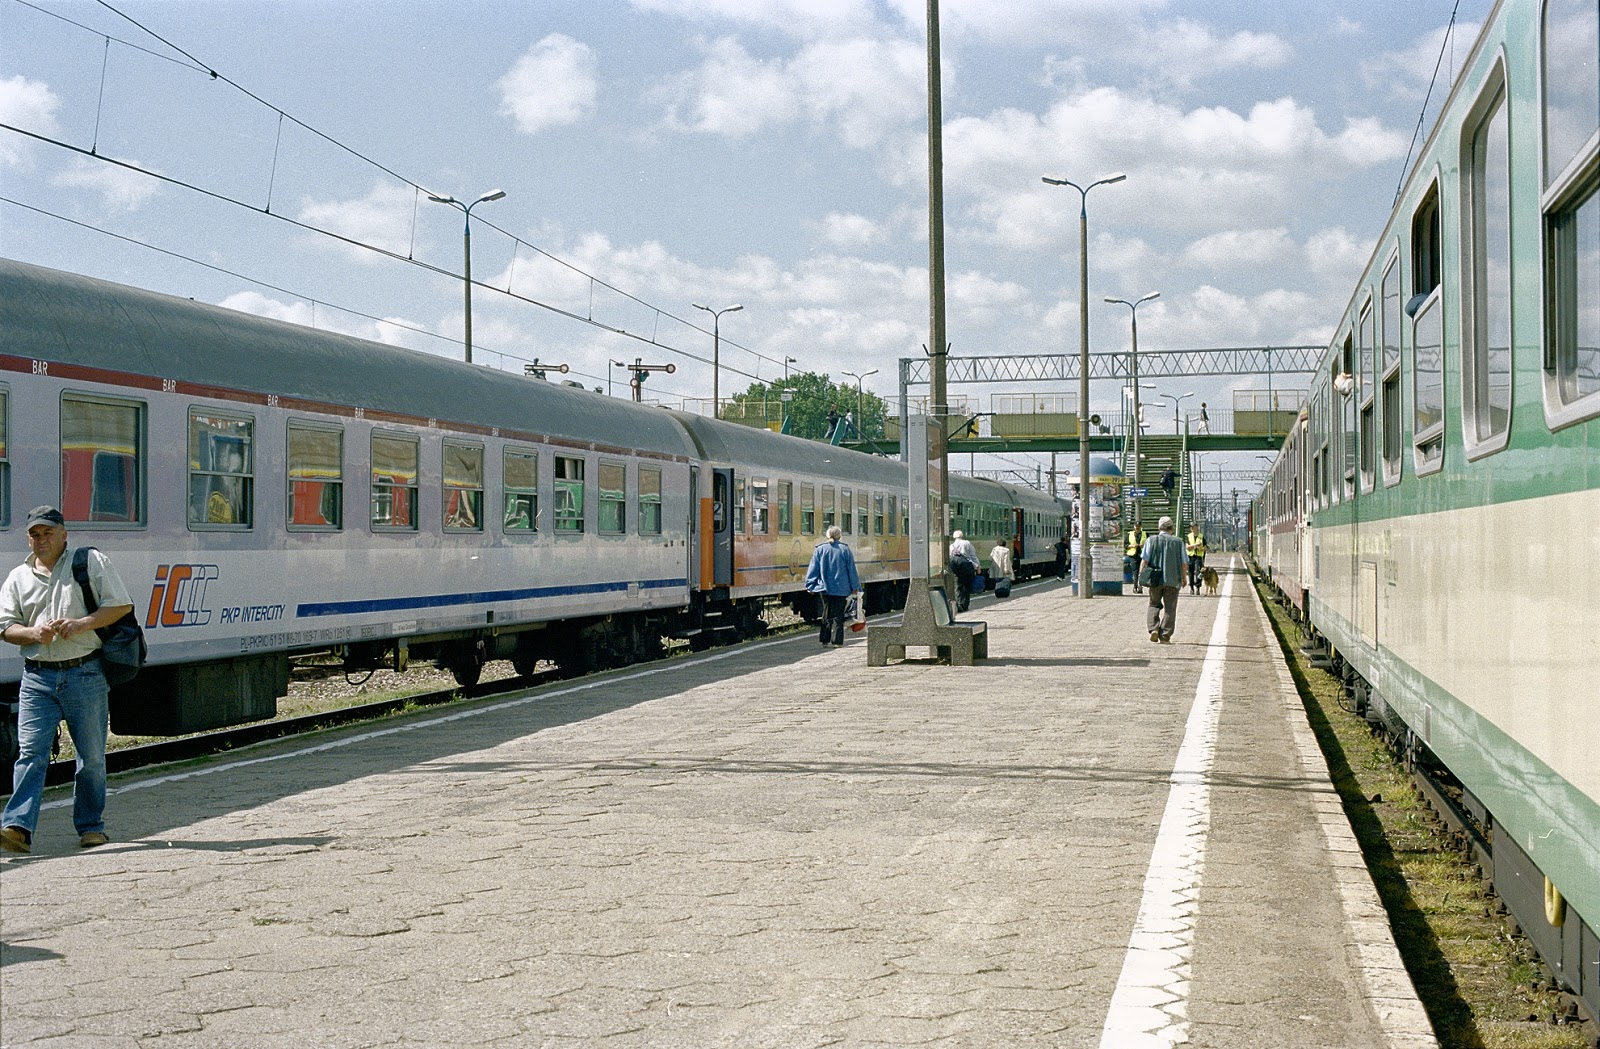 the train was also shortened by several coaches also the remaining coaches got a lot emptier here certainly signs of the journey embarking for more